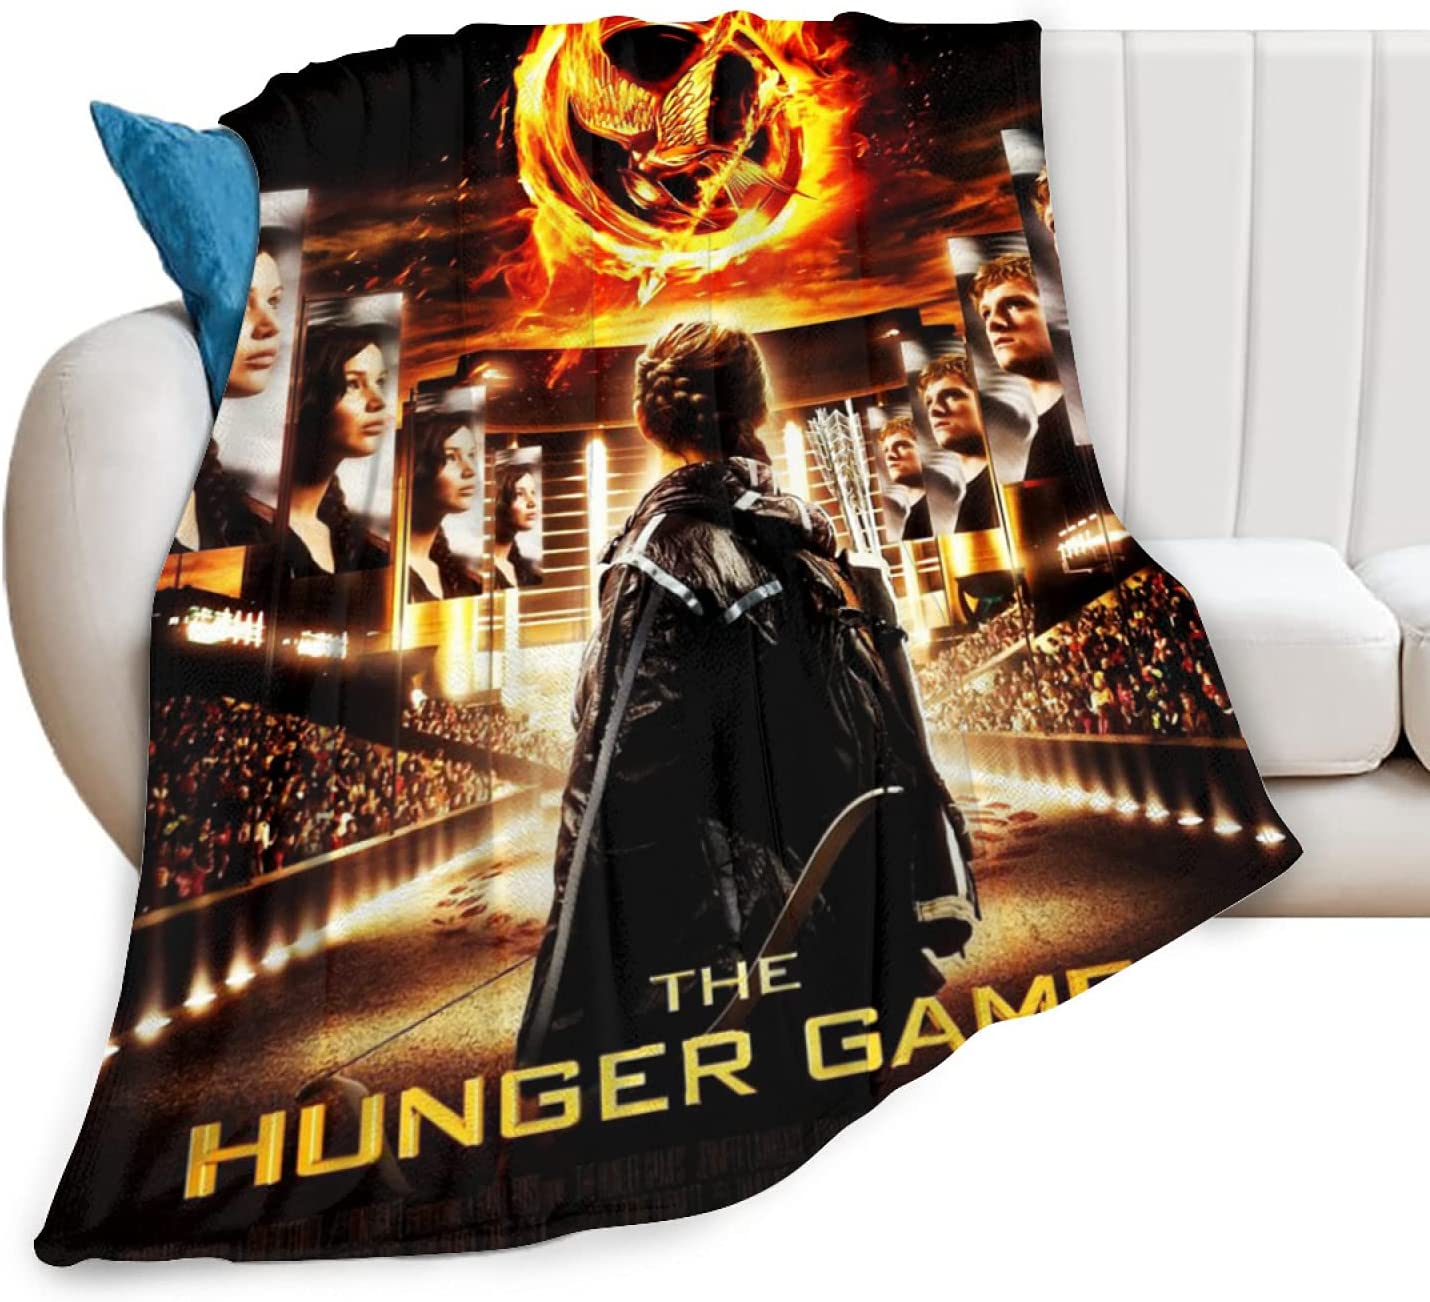 The Hunger Games Blanket Super Soft shop Flannel Sale price Anti-Pilling